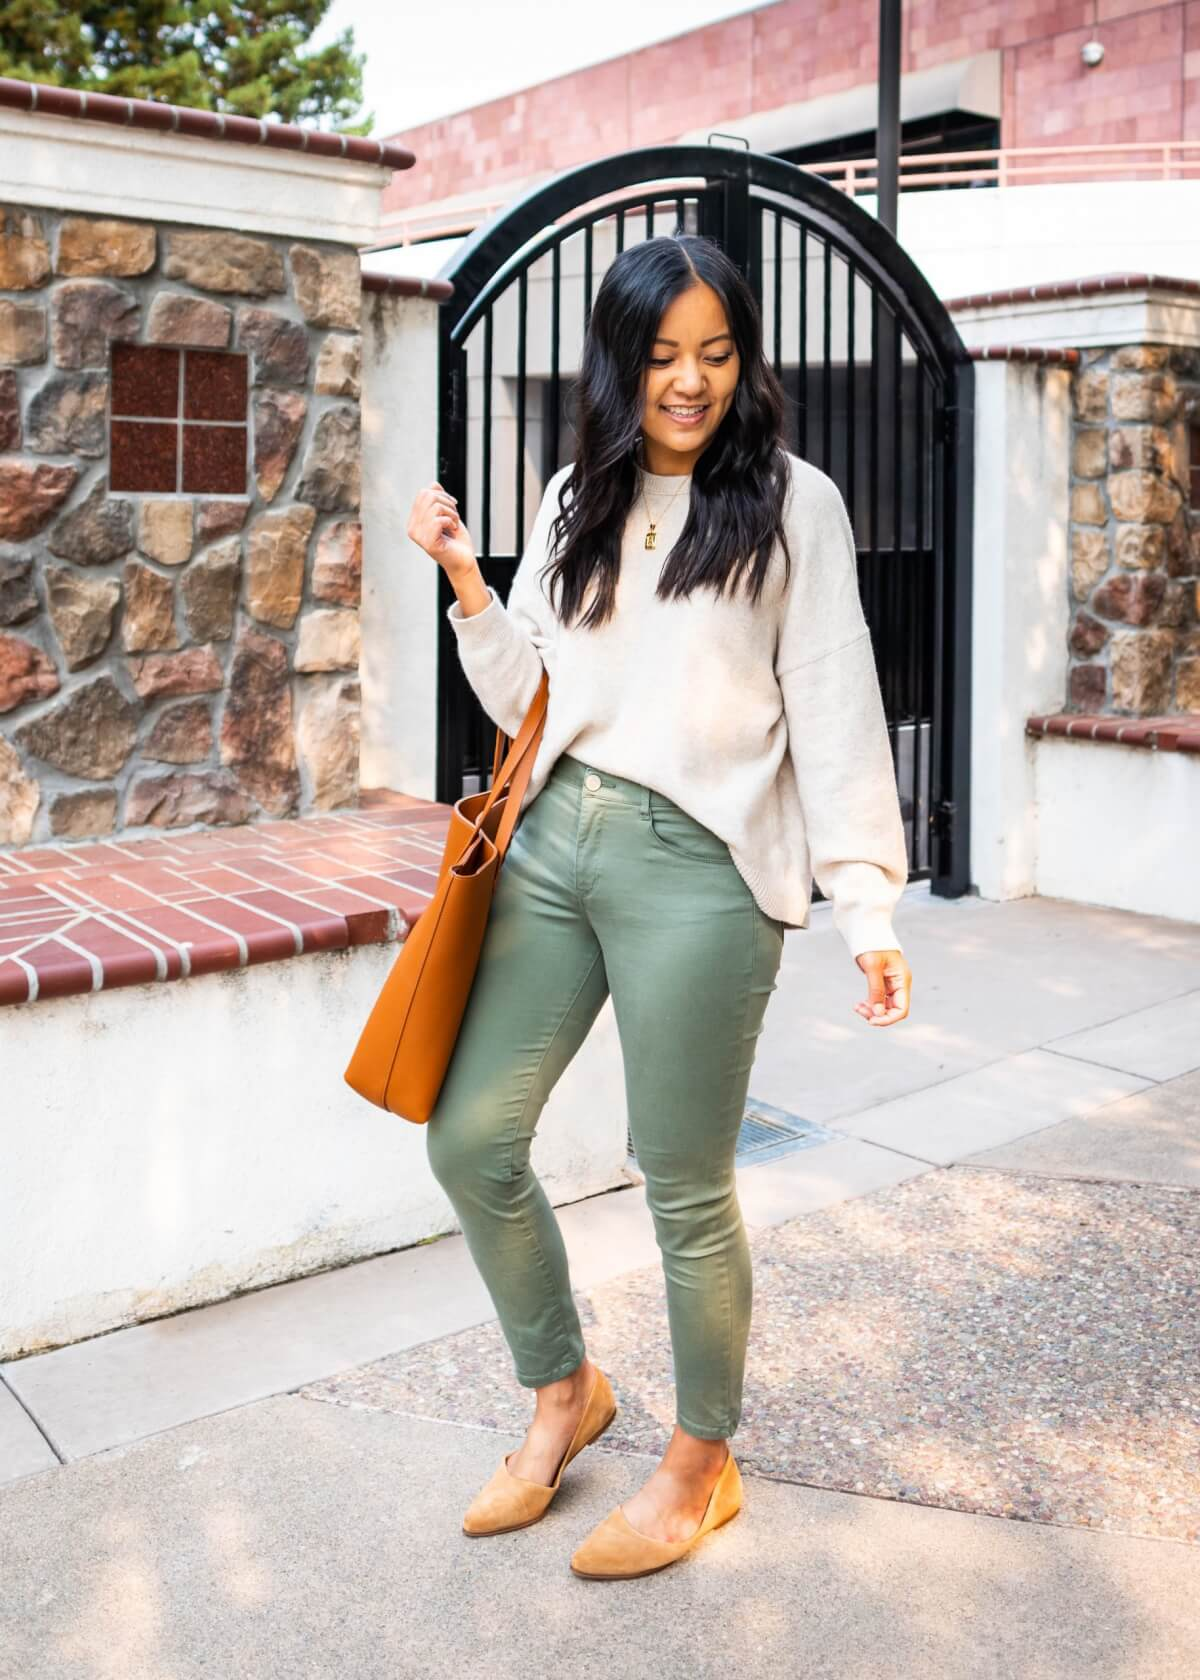 Comfy Casual Work Outfit: Treasure & Bond cream sweater + Wit & Wisdom olive green ankle pants + gold pendant necklace + tan suede flats + tan tote side view